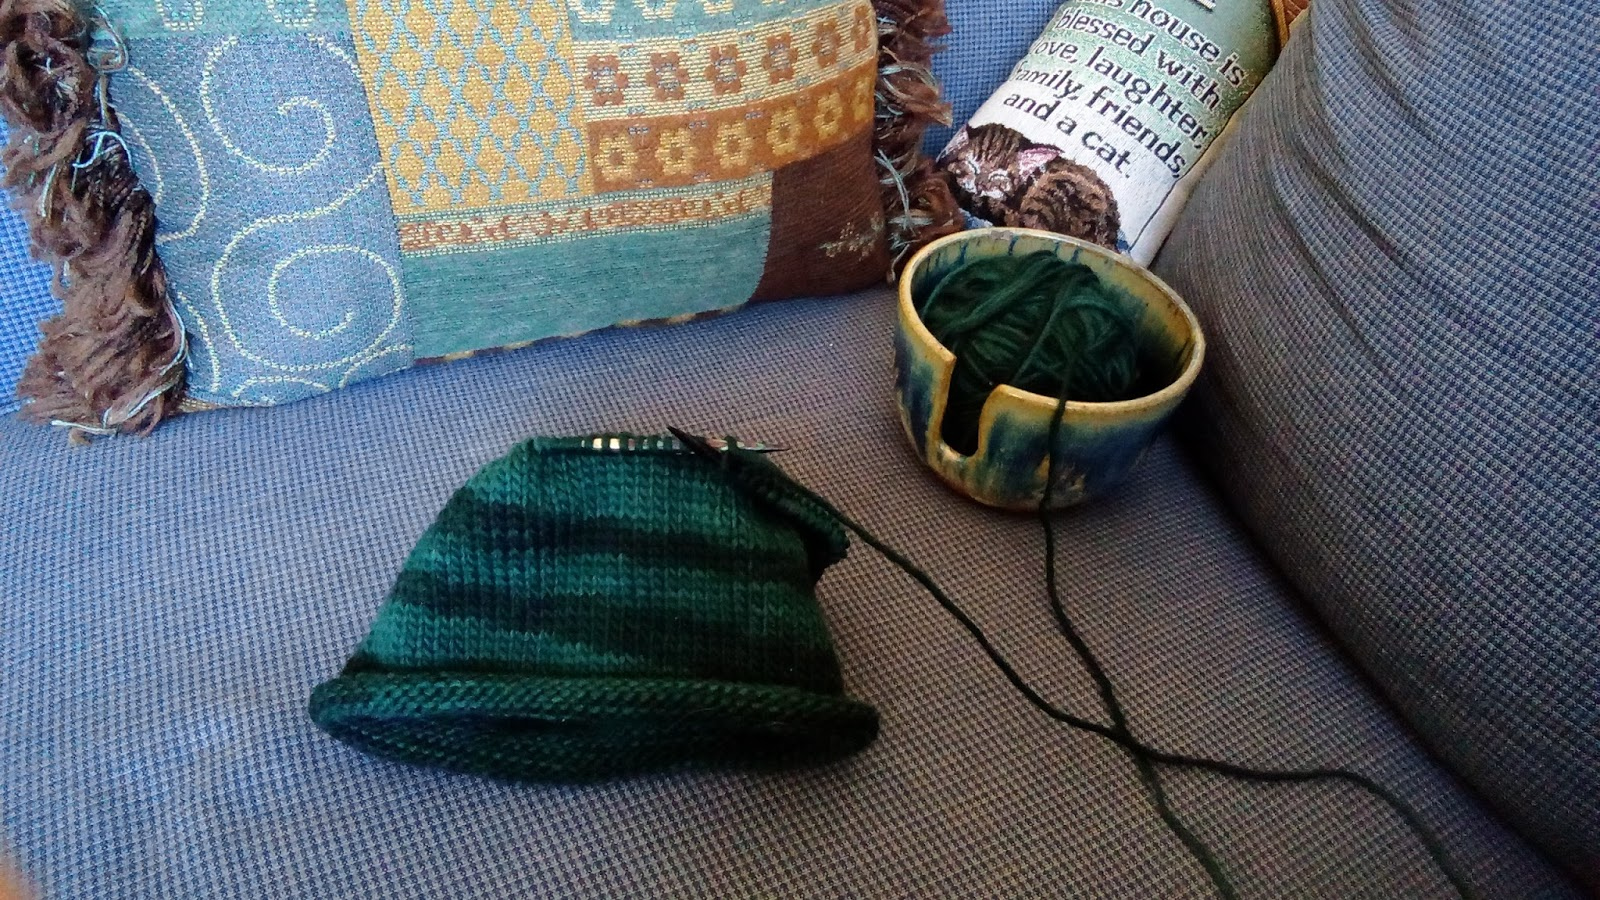 Lovely Yarn Escapes Wednesday S Yarn Along A New Knitting Book